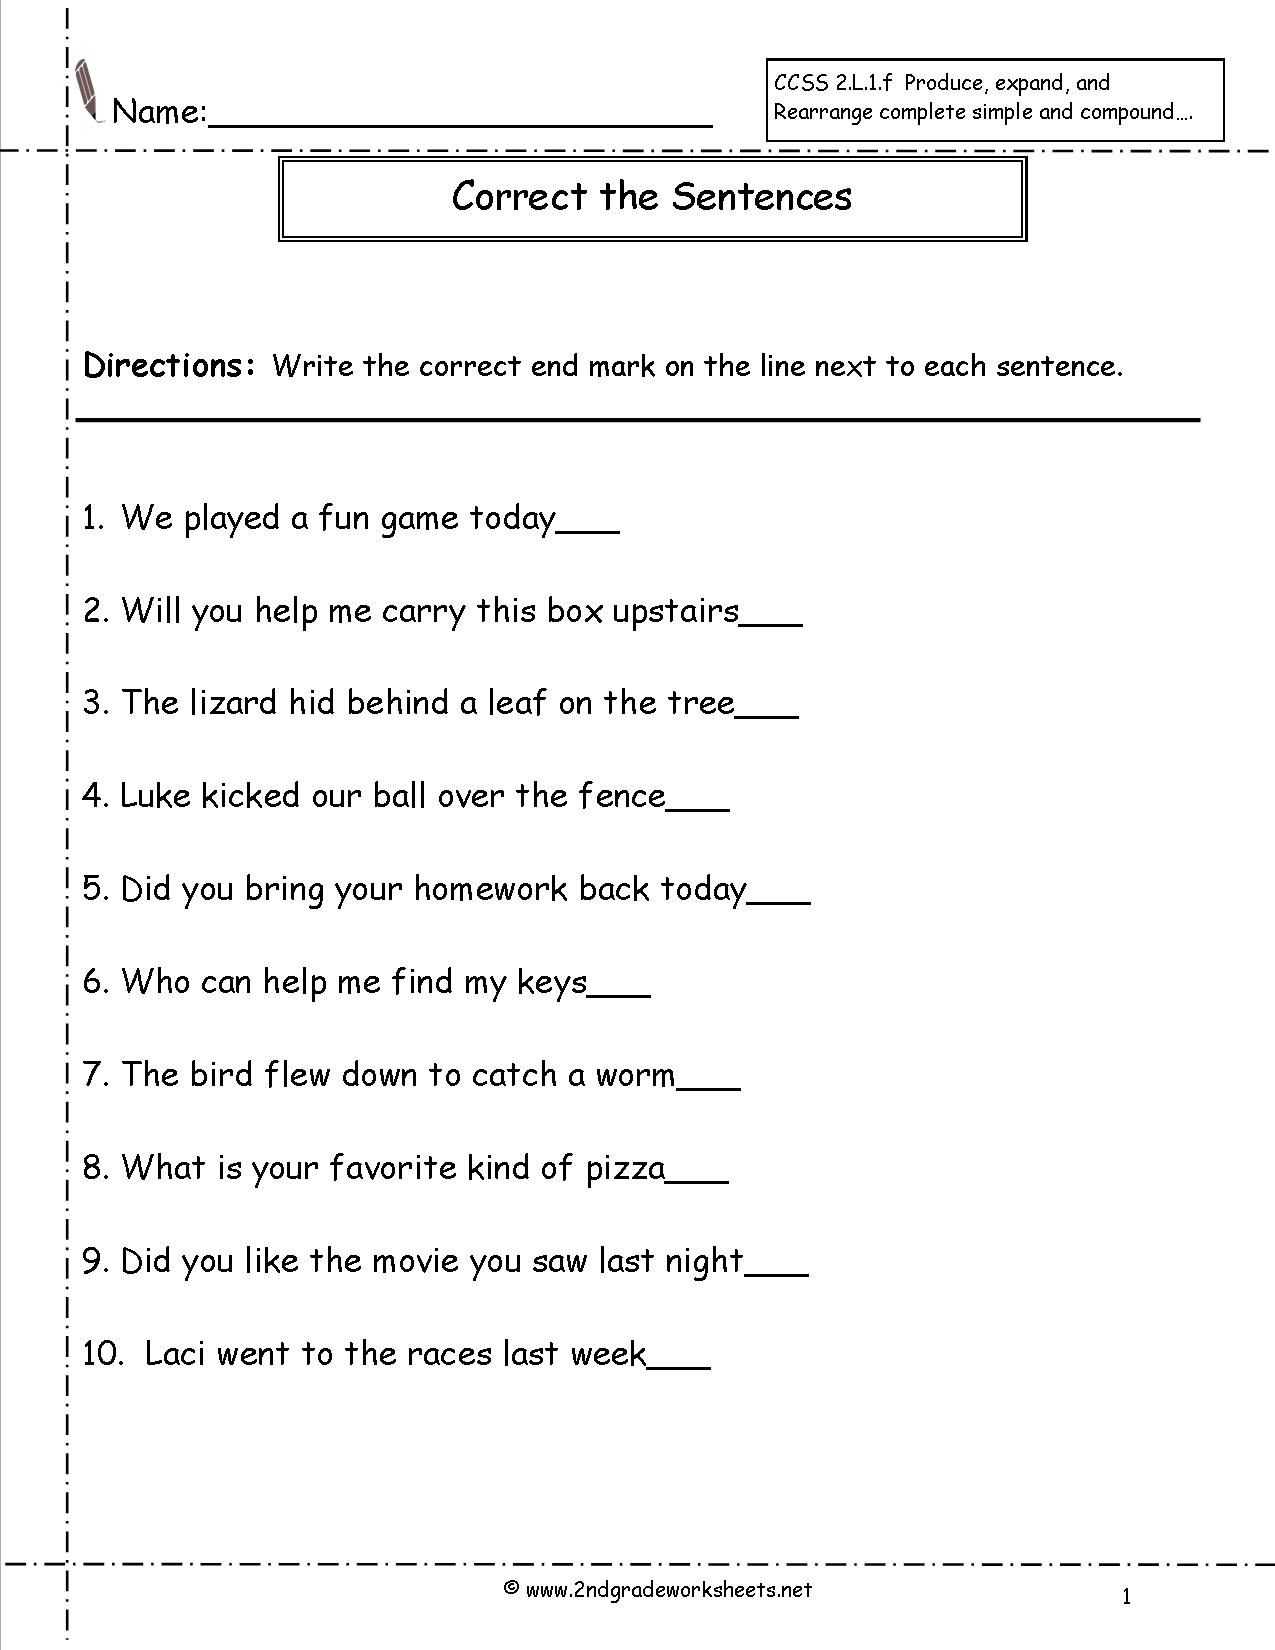 hight resolution of 15 Best Handwriting Worksheets For 2nd Graders images on Worksheets Ideas